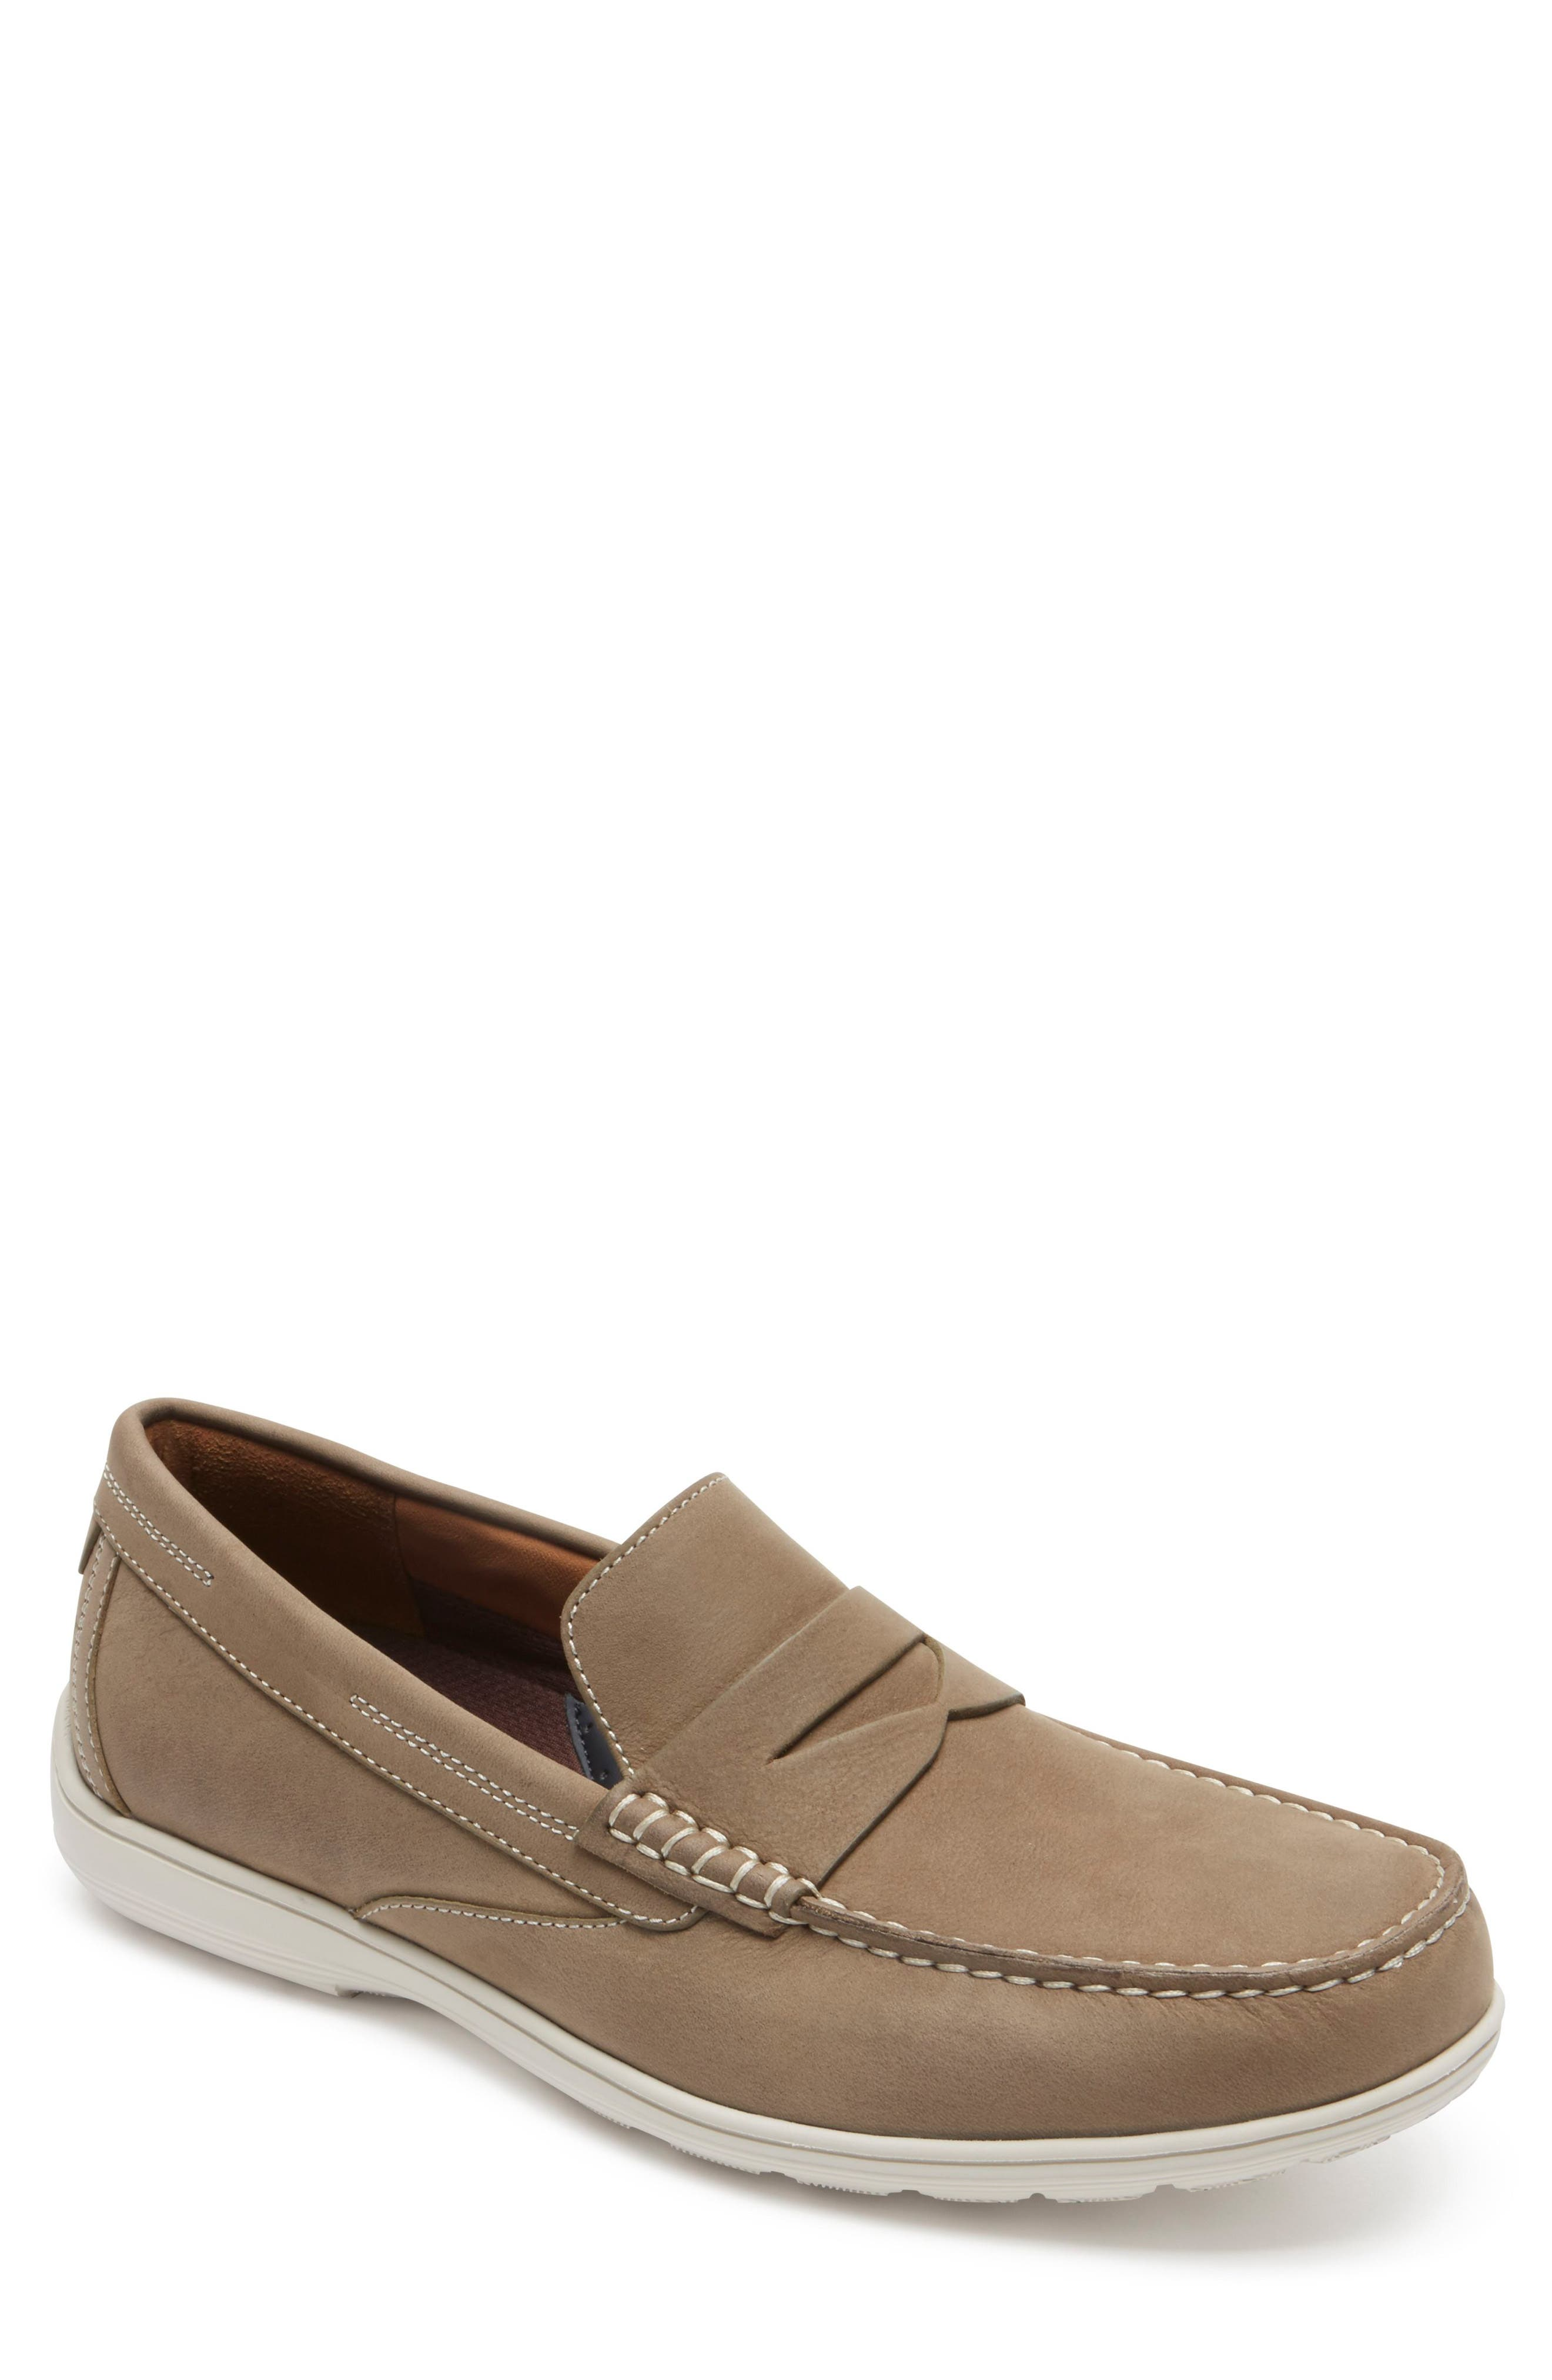 Main Image - Rockport Total Motion Penny Loafer (Men)